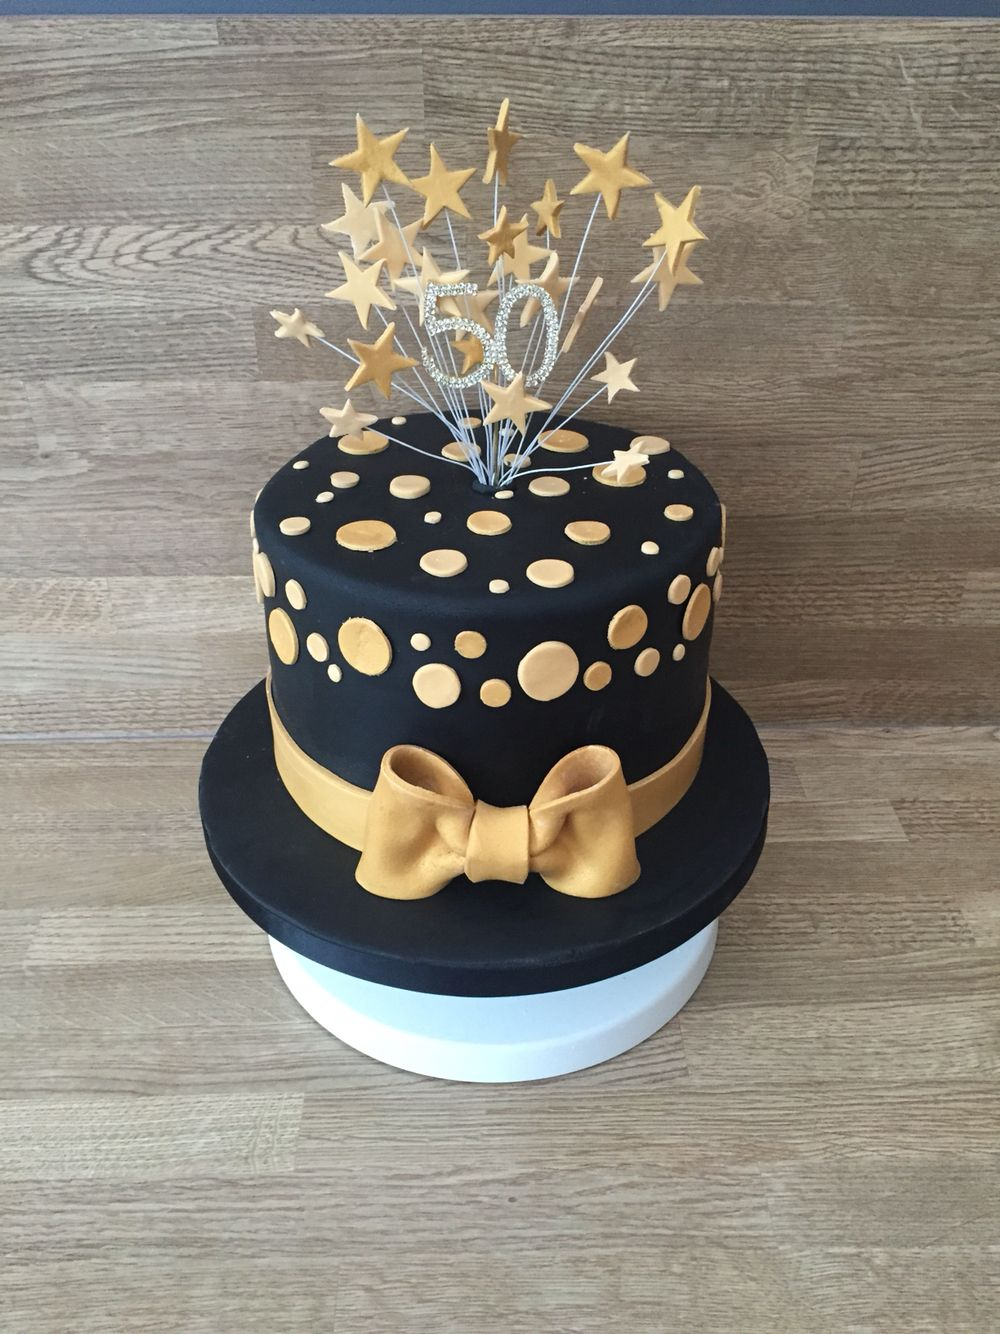 Black And Gold Cake Birthday Cakes For Women Black